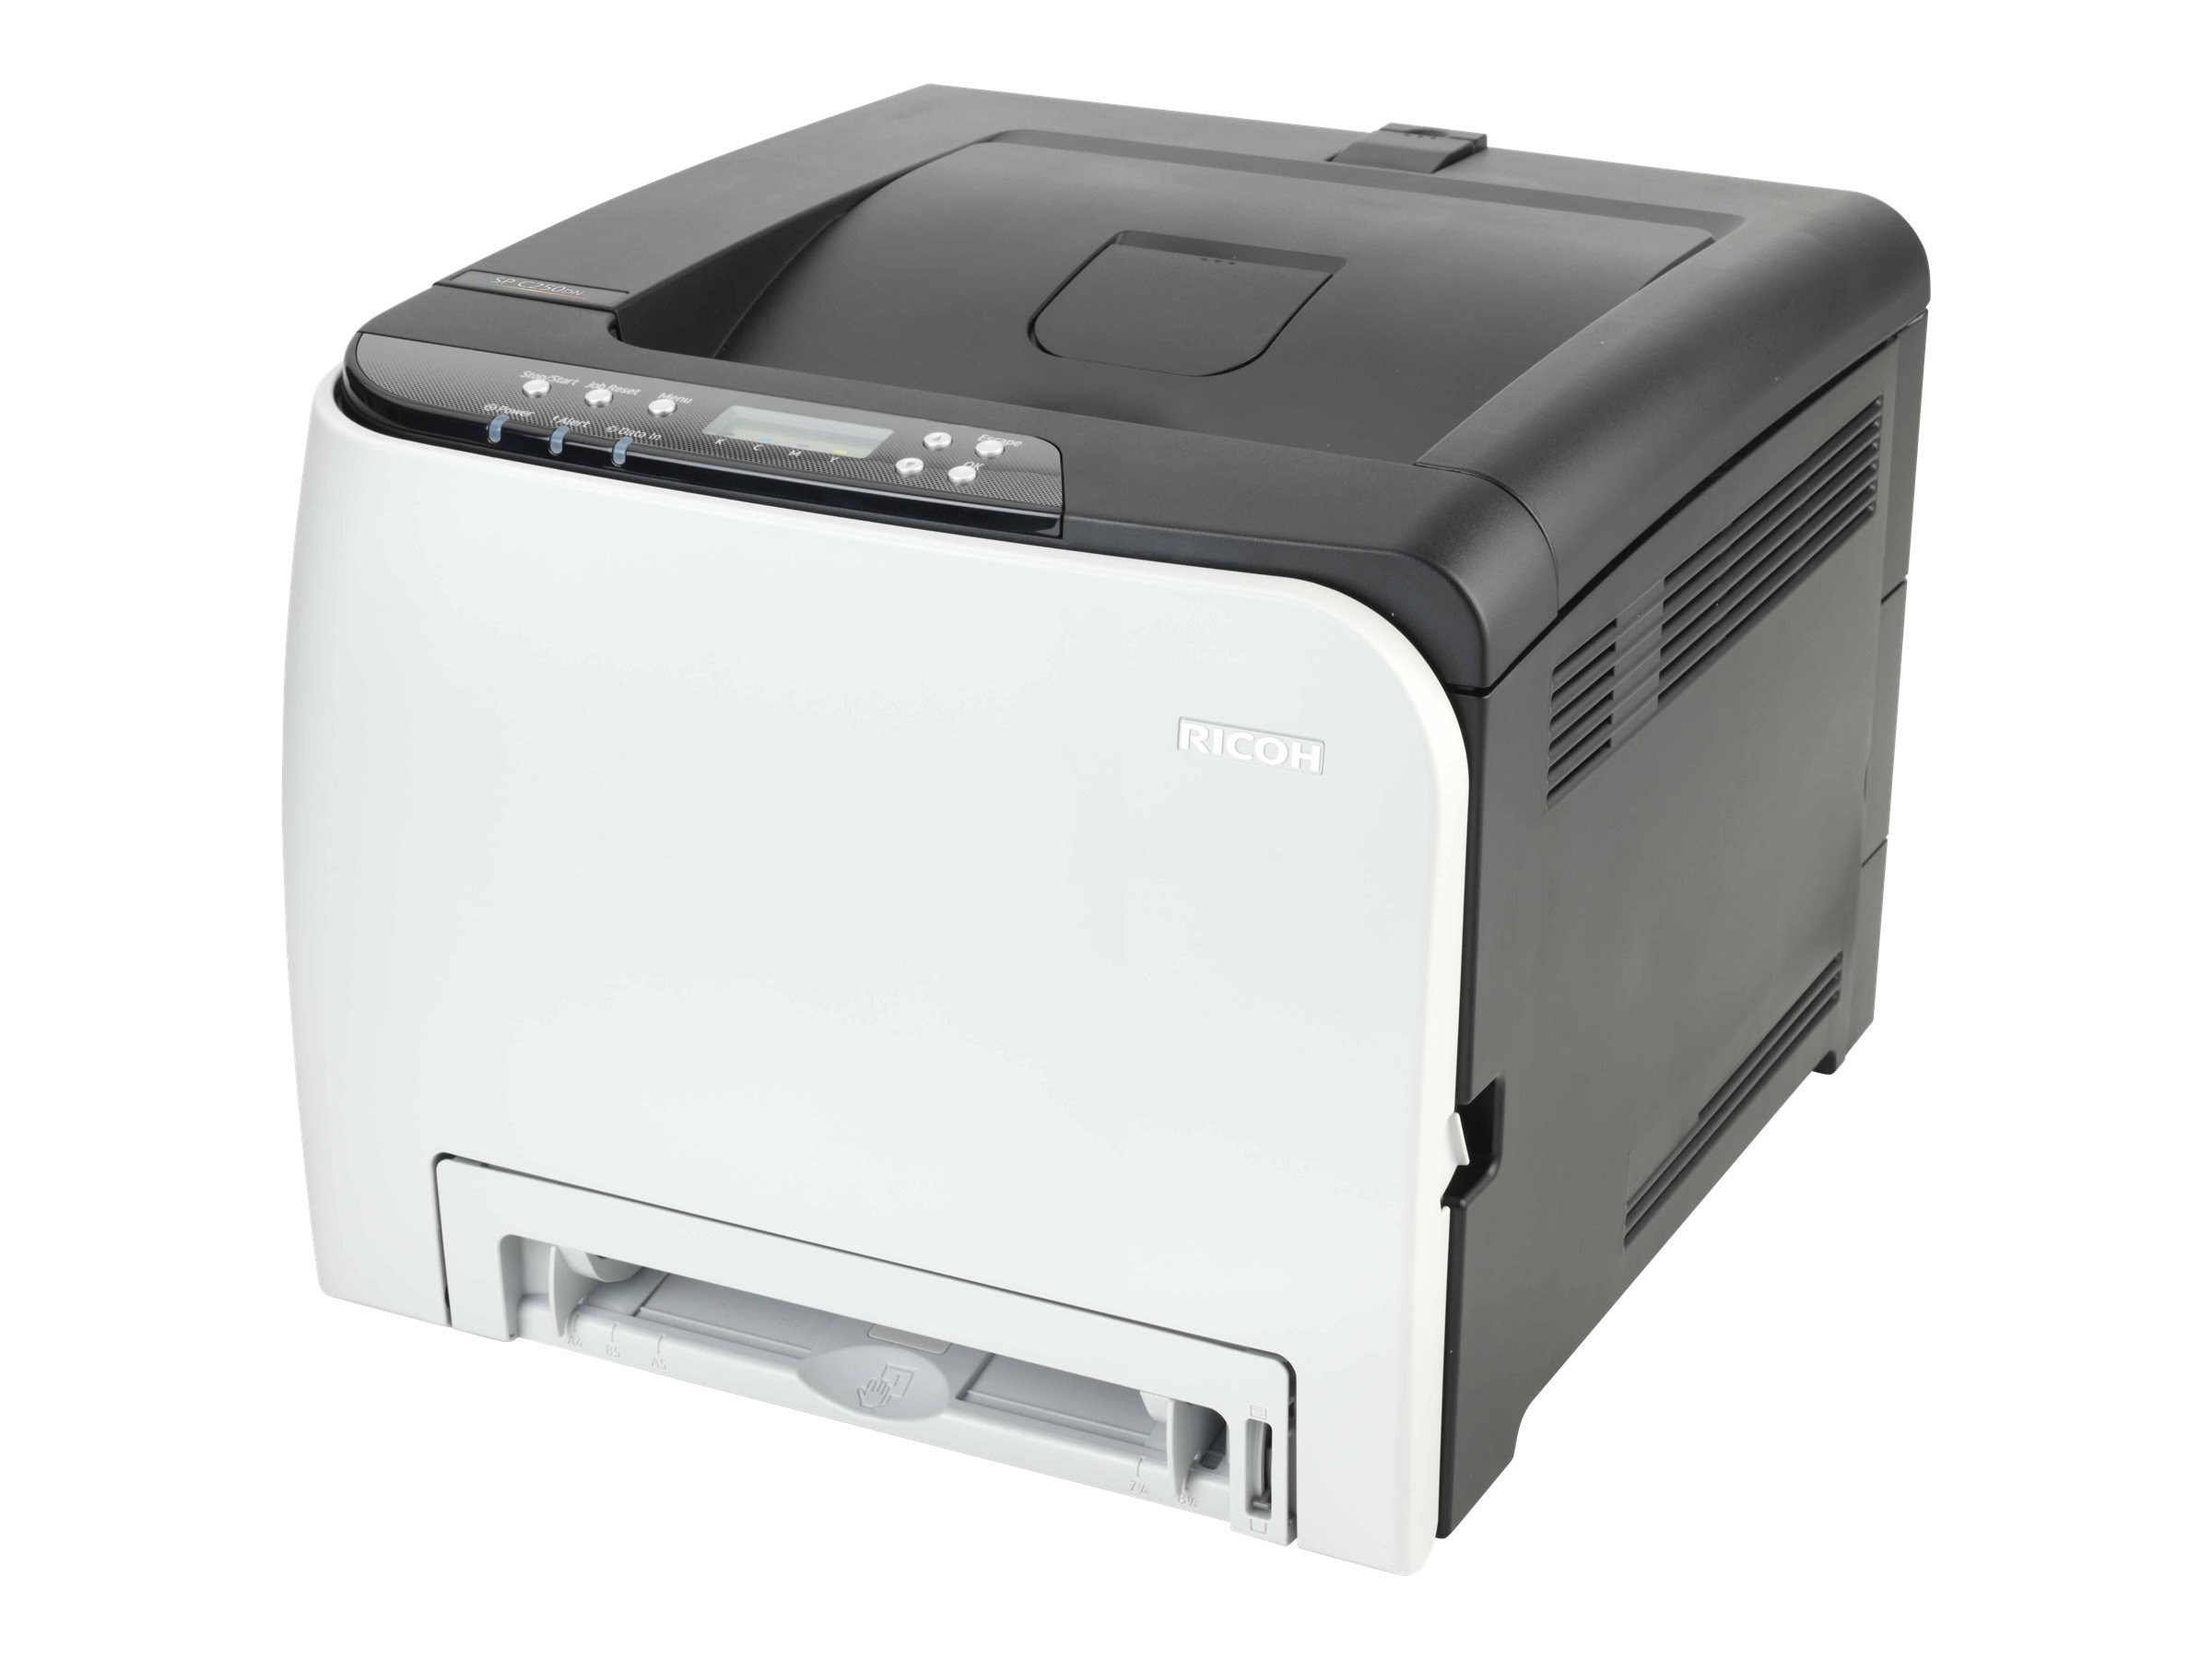 Ricoh SP-C250DN Color Laser Printer, 407519, 17076466, Printers - Laser & LED (color)